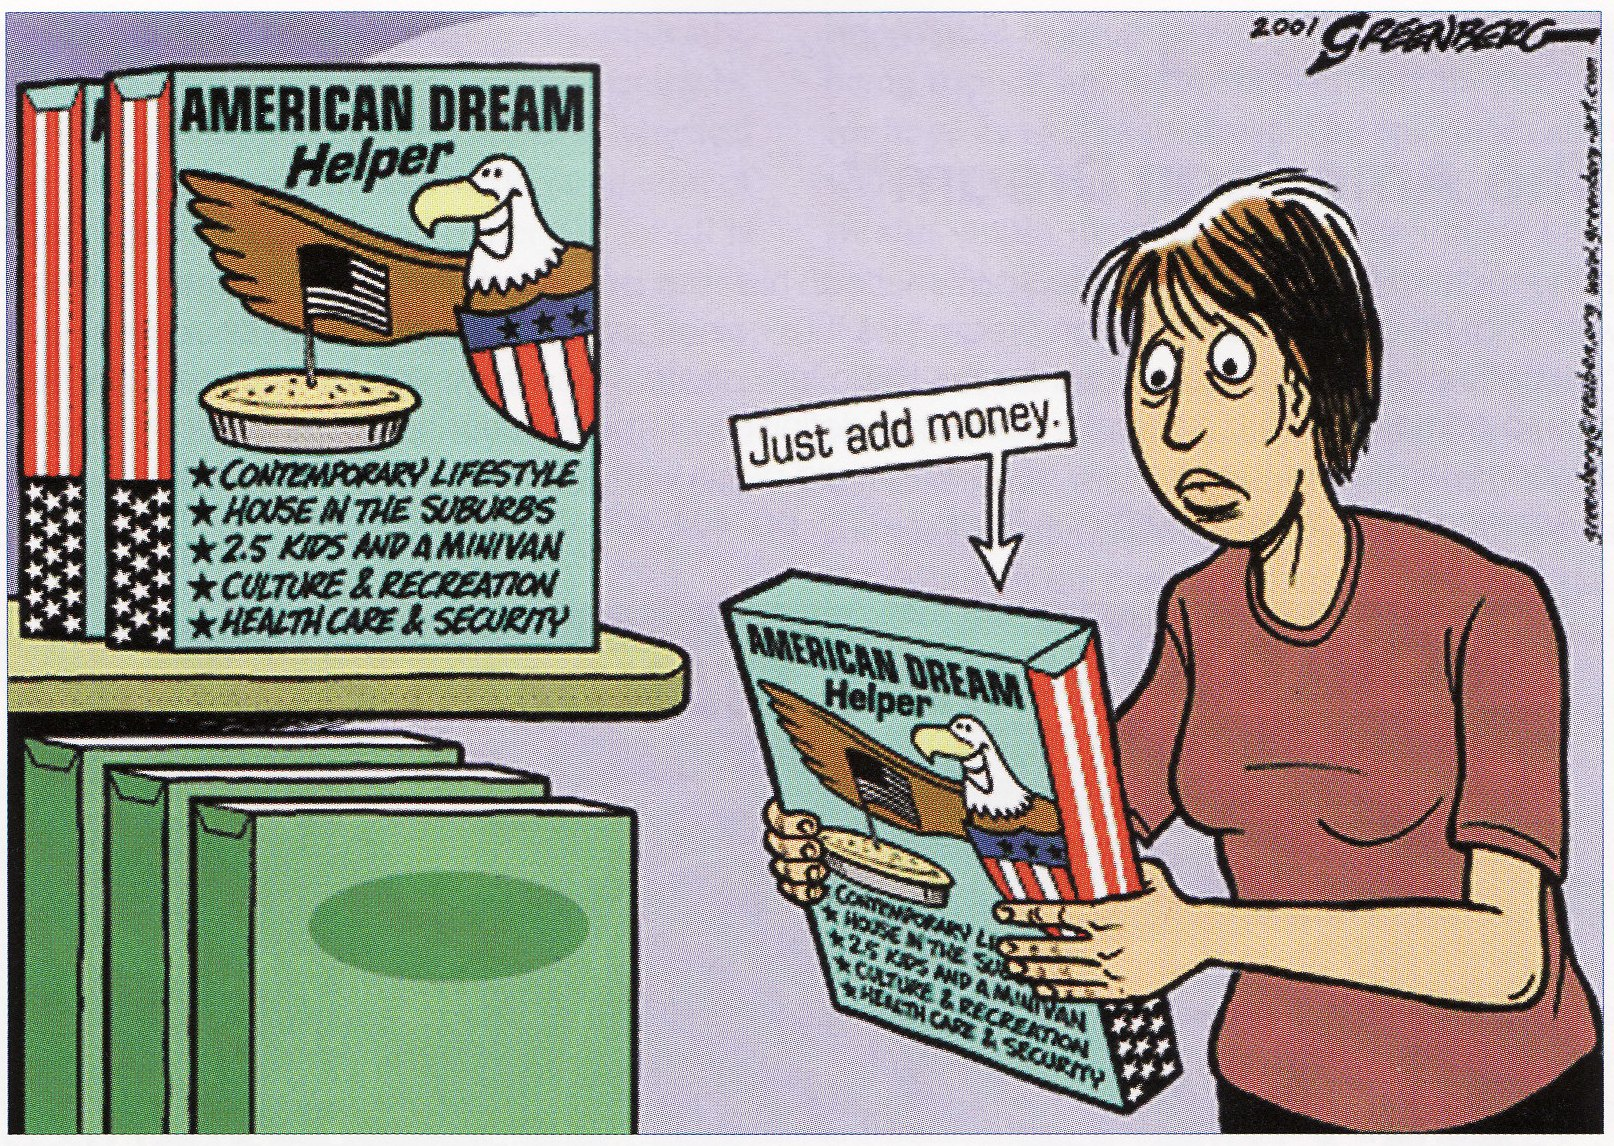 American Dream Disrupted